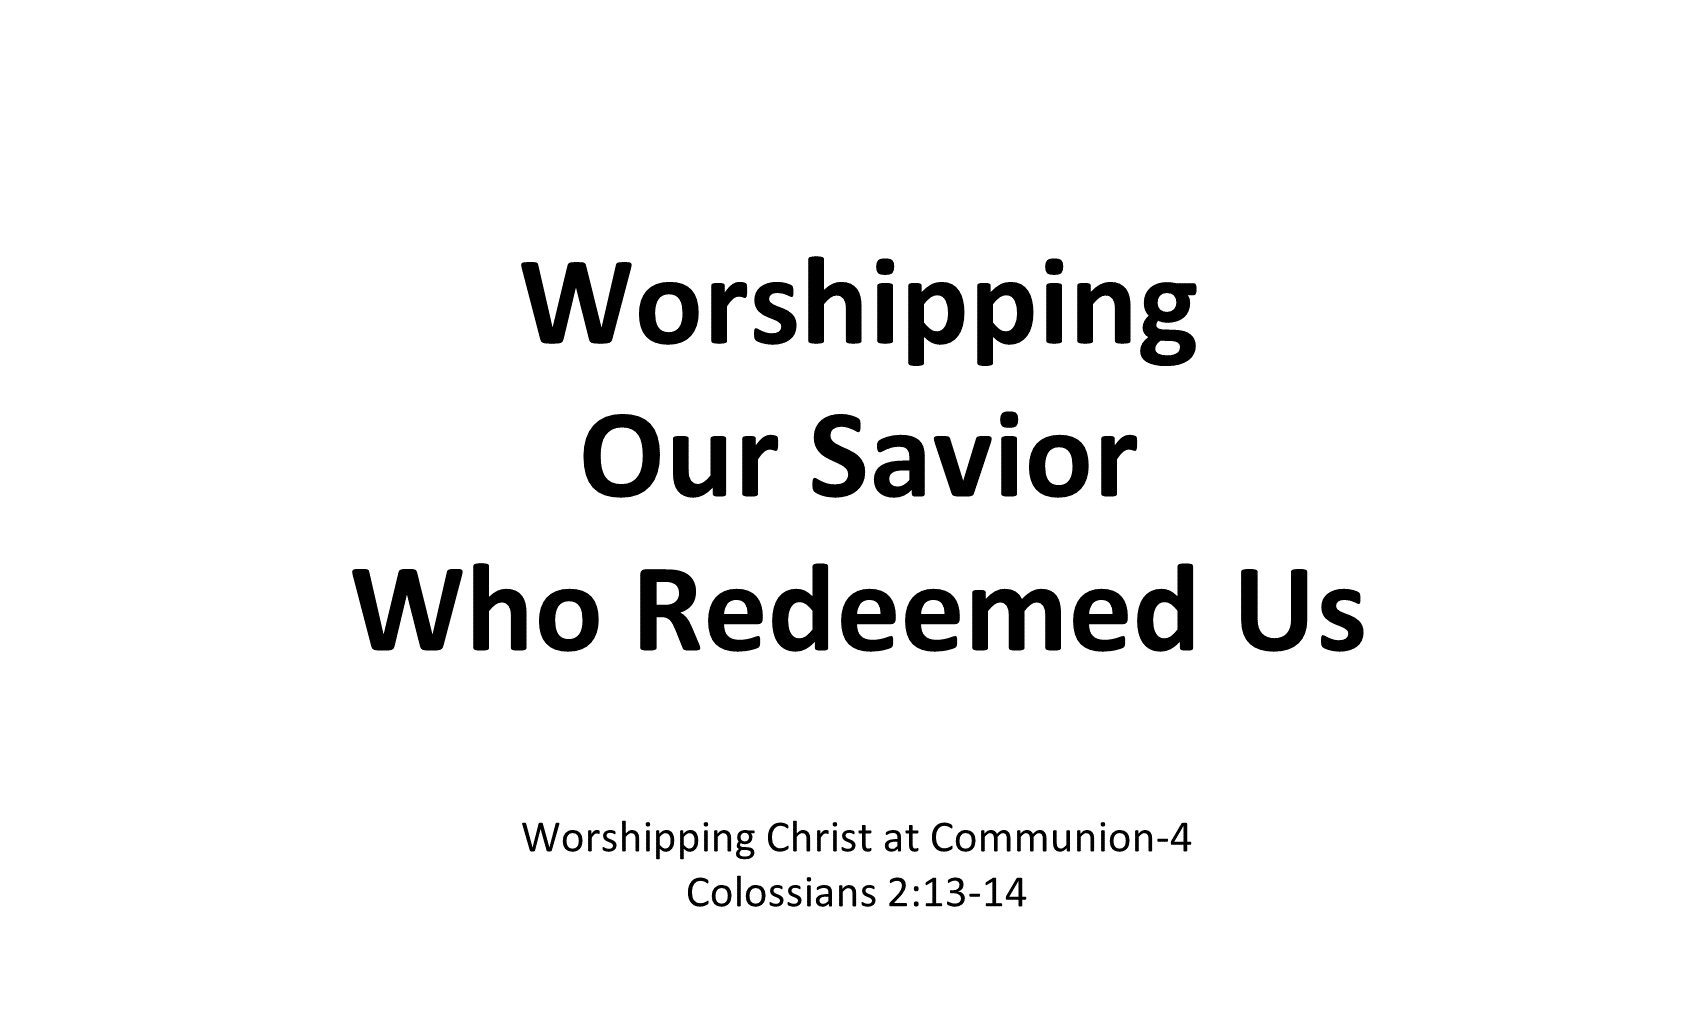 WCC-05 - Worshipping Our Savior Who Redeemed Us (1)